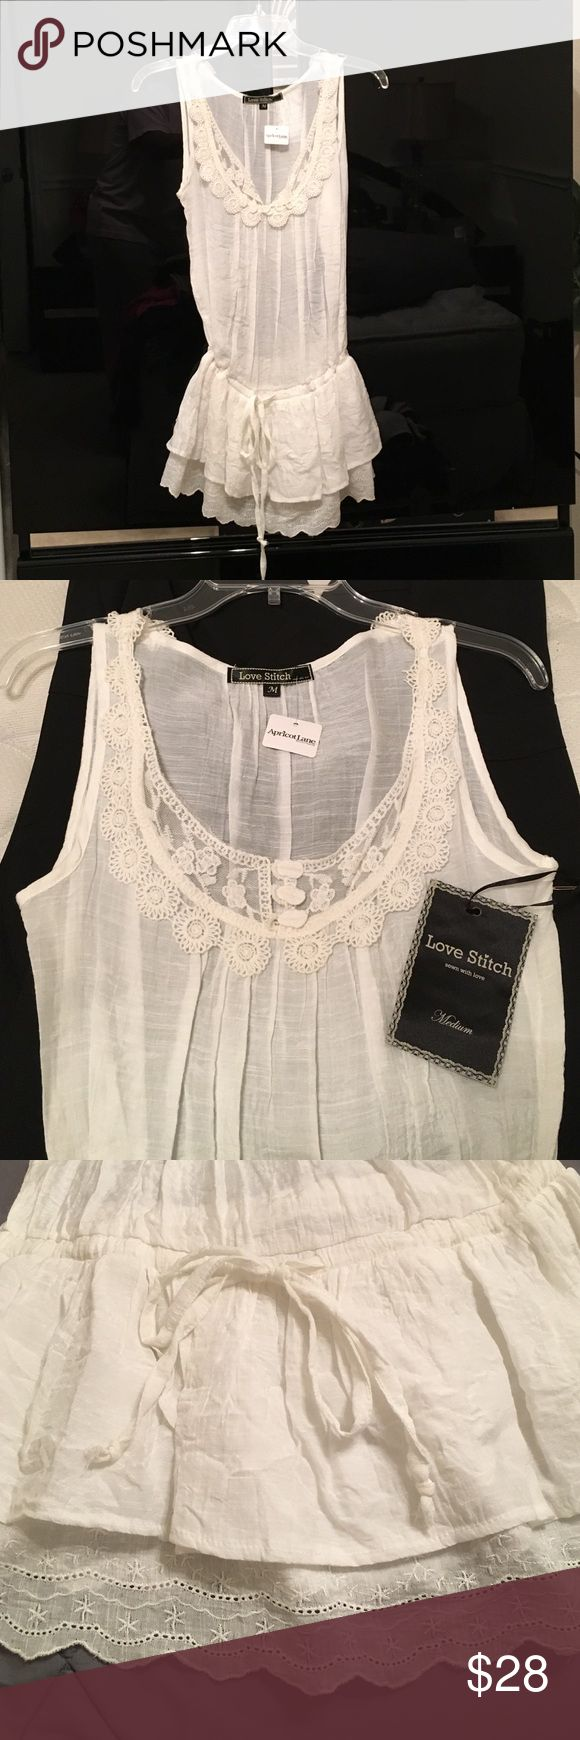 Brand new Love Stitch Blouse White with lace accents and tie waist.  Never worn with original tags from Apricot Lane. Love Stitch Tops Blouses